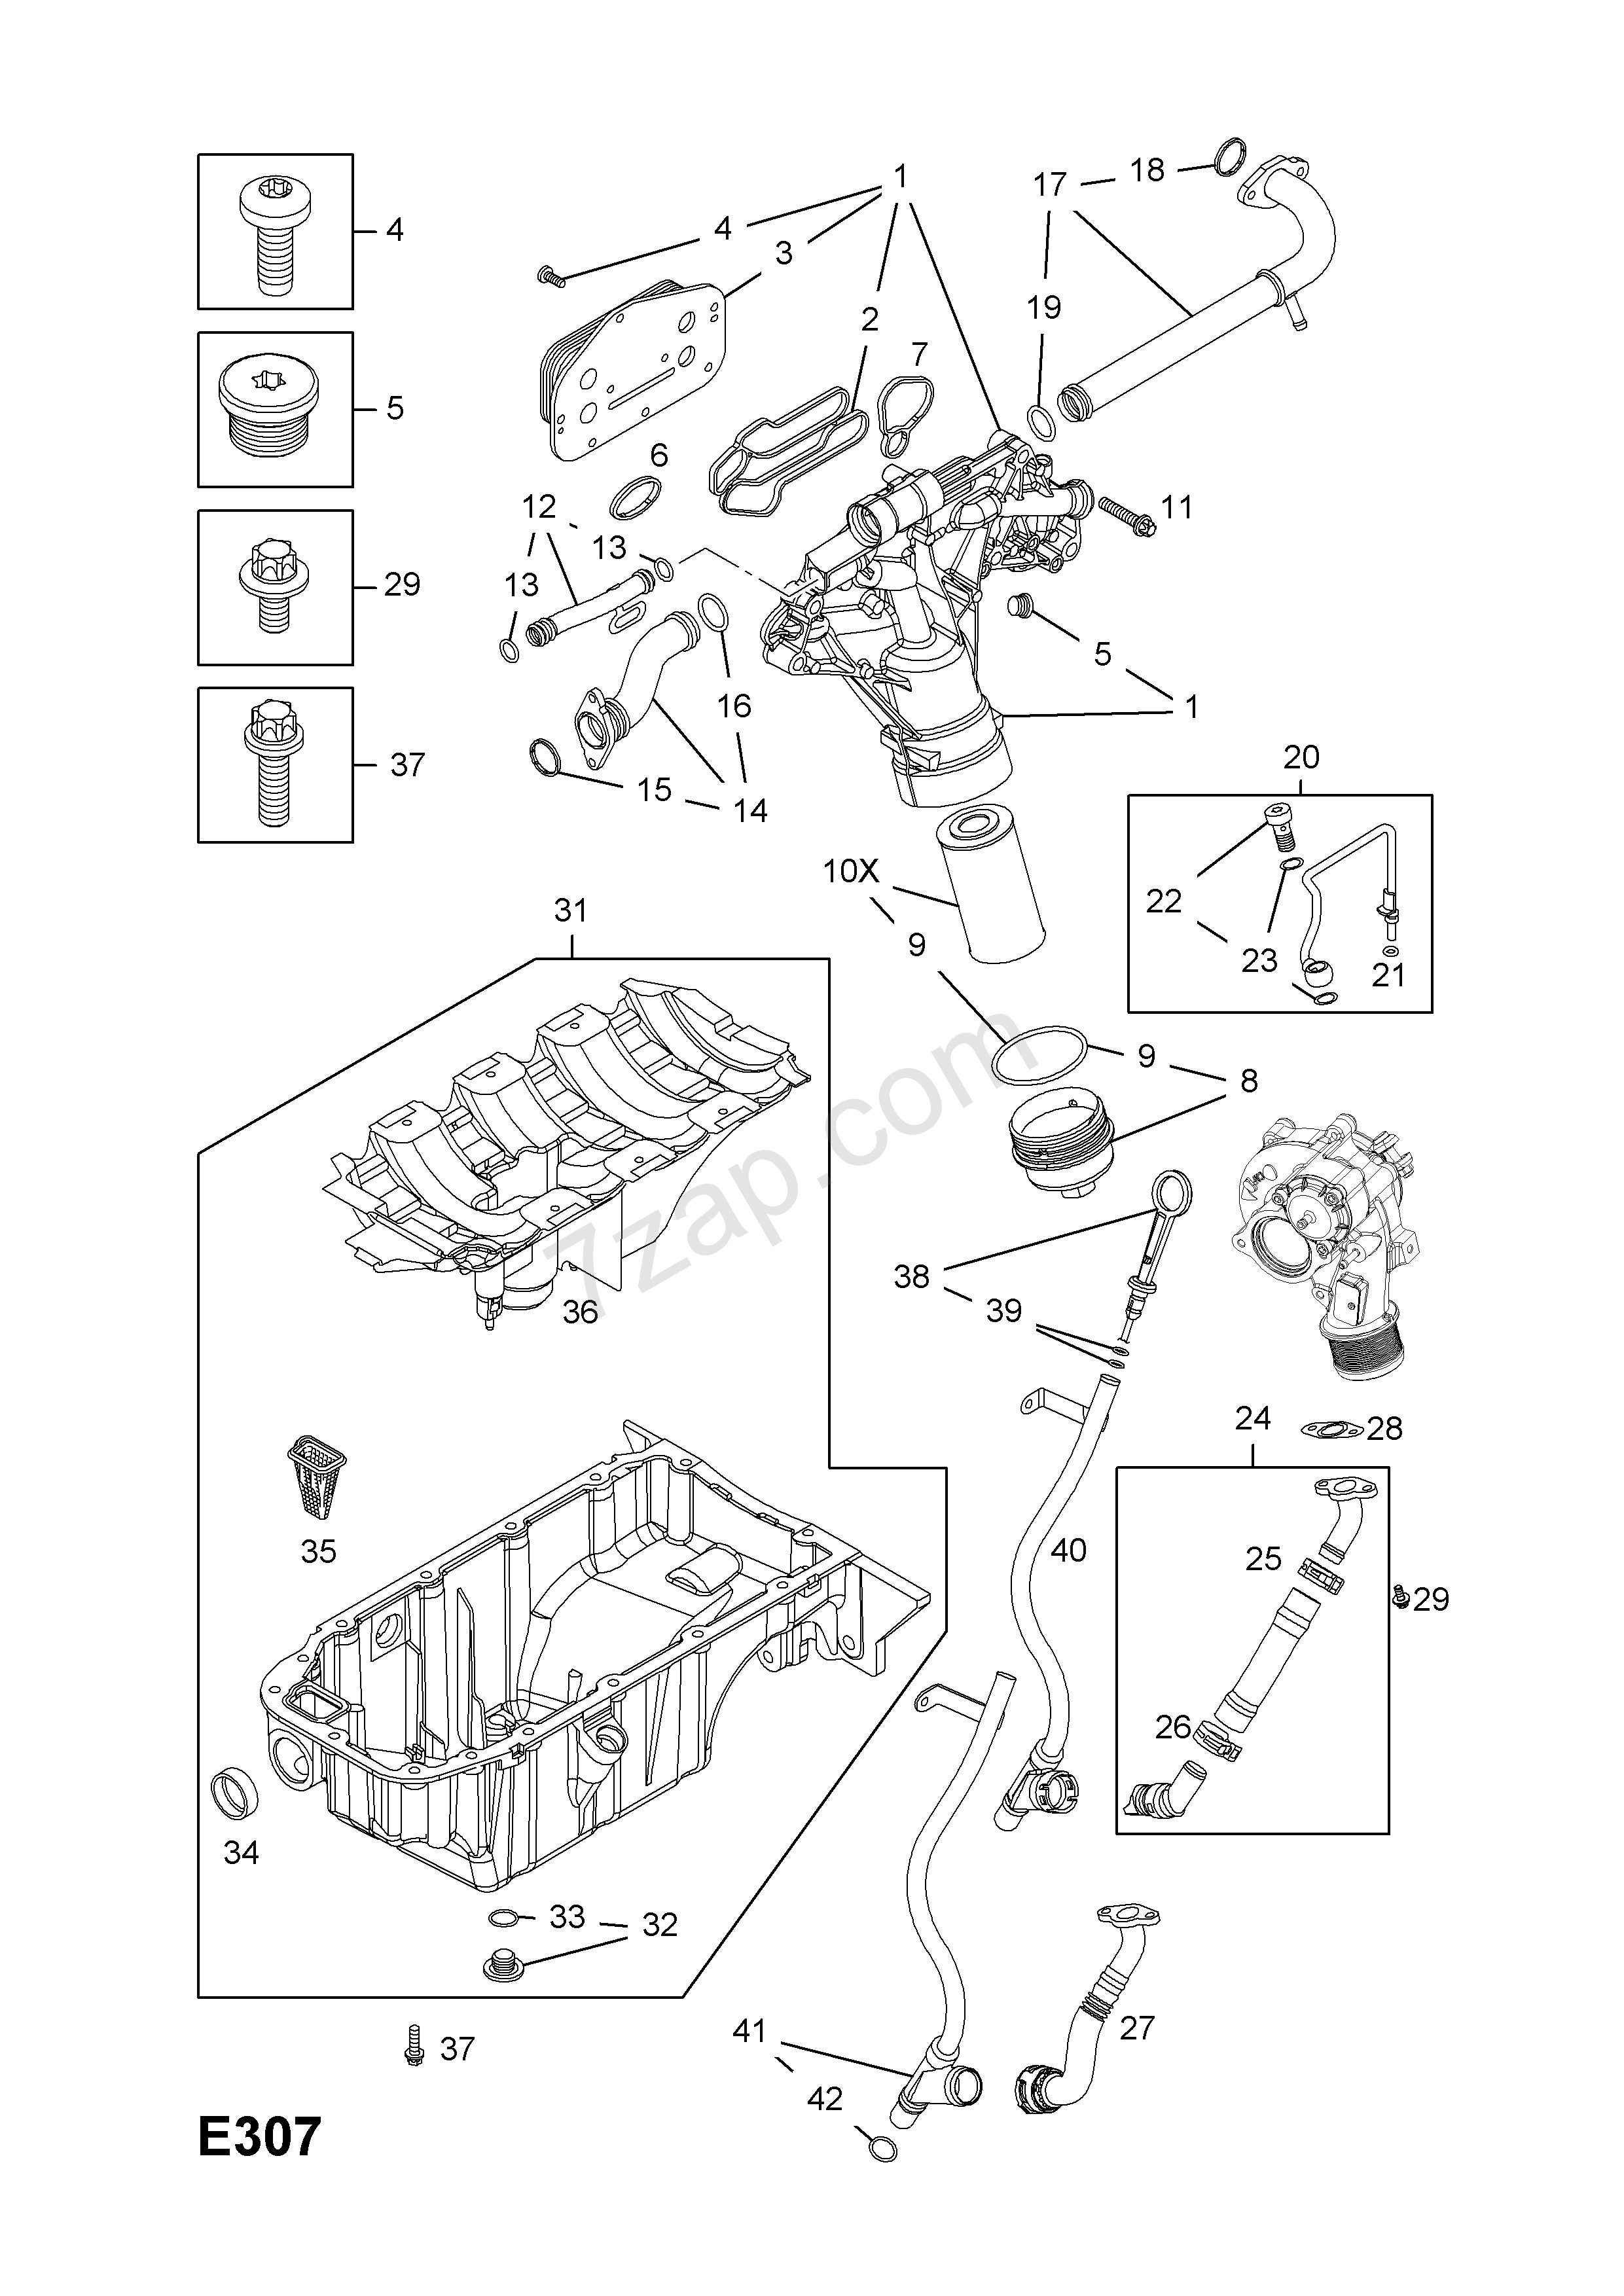 Vauxhall Corsa Engine Diagram Oil Level Sensor [please Refer to Group P Engine and Cooling Of Vauxhall Corsa Engine Diagram